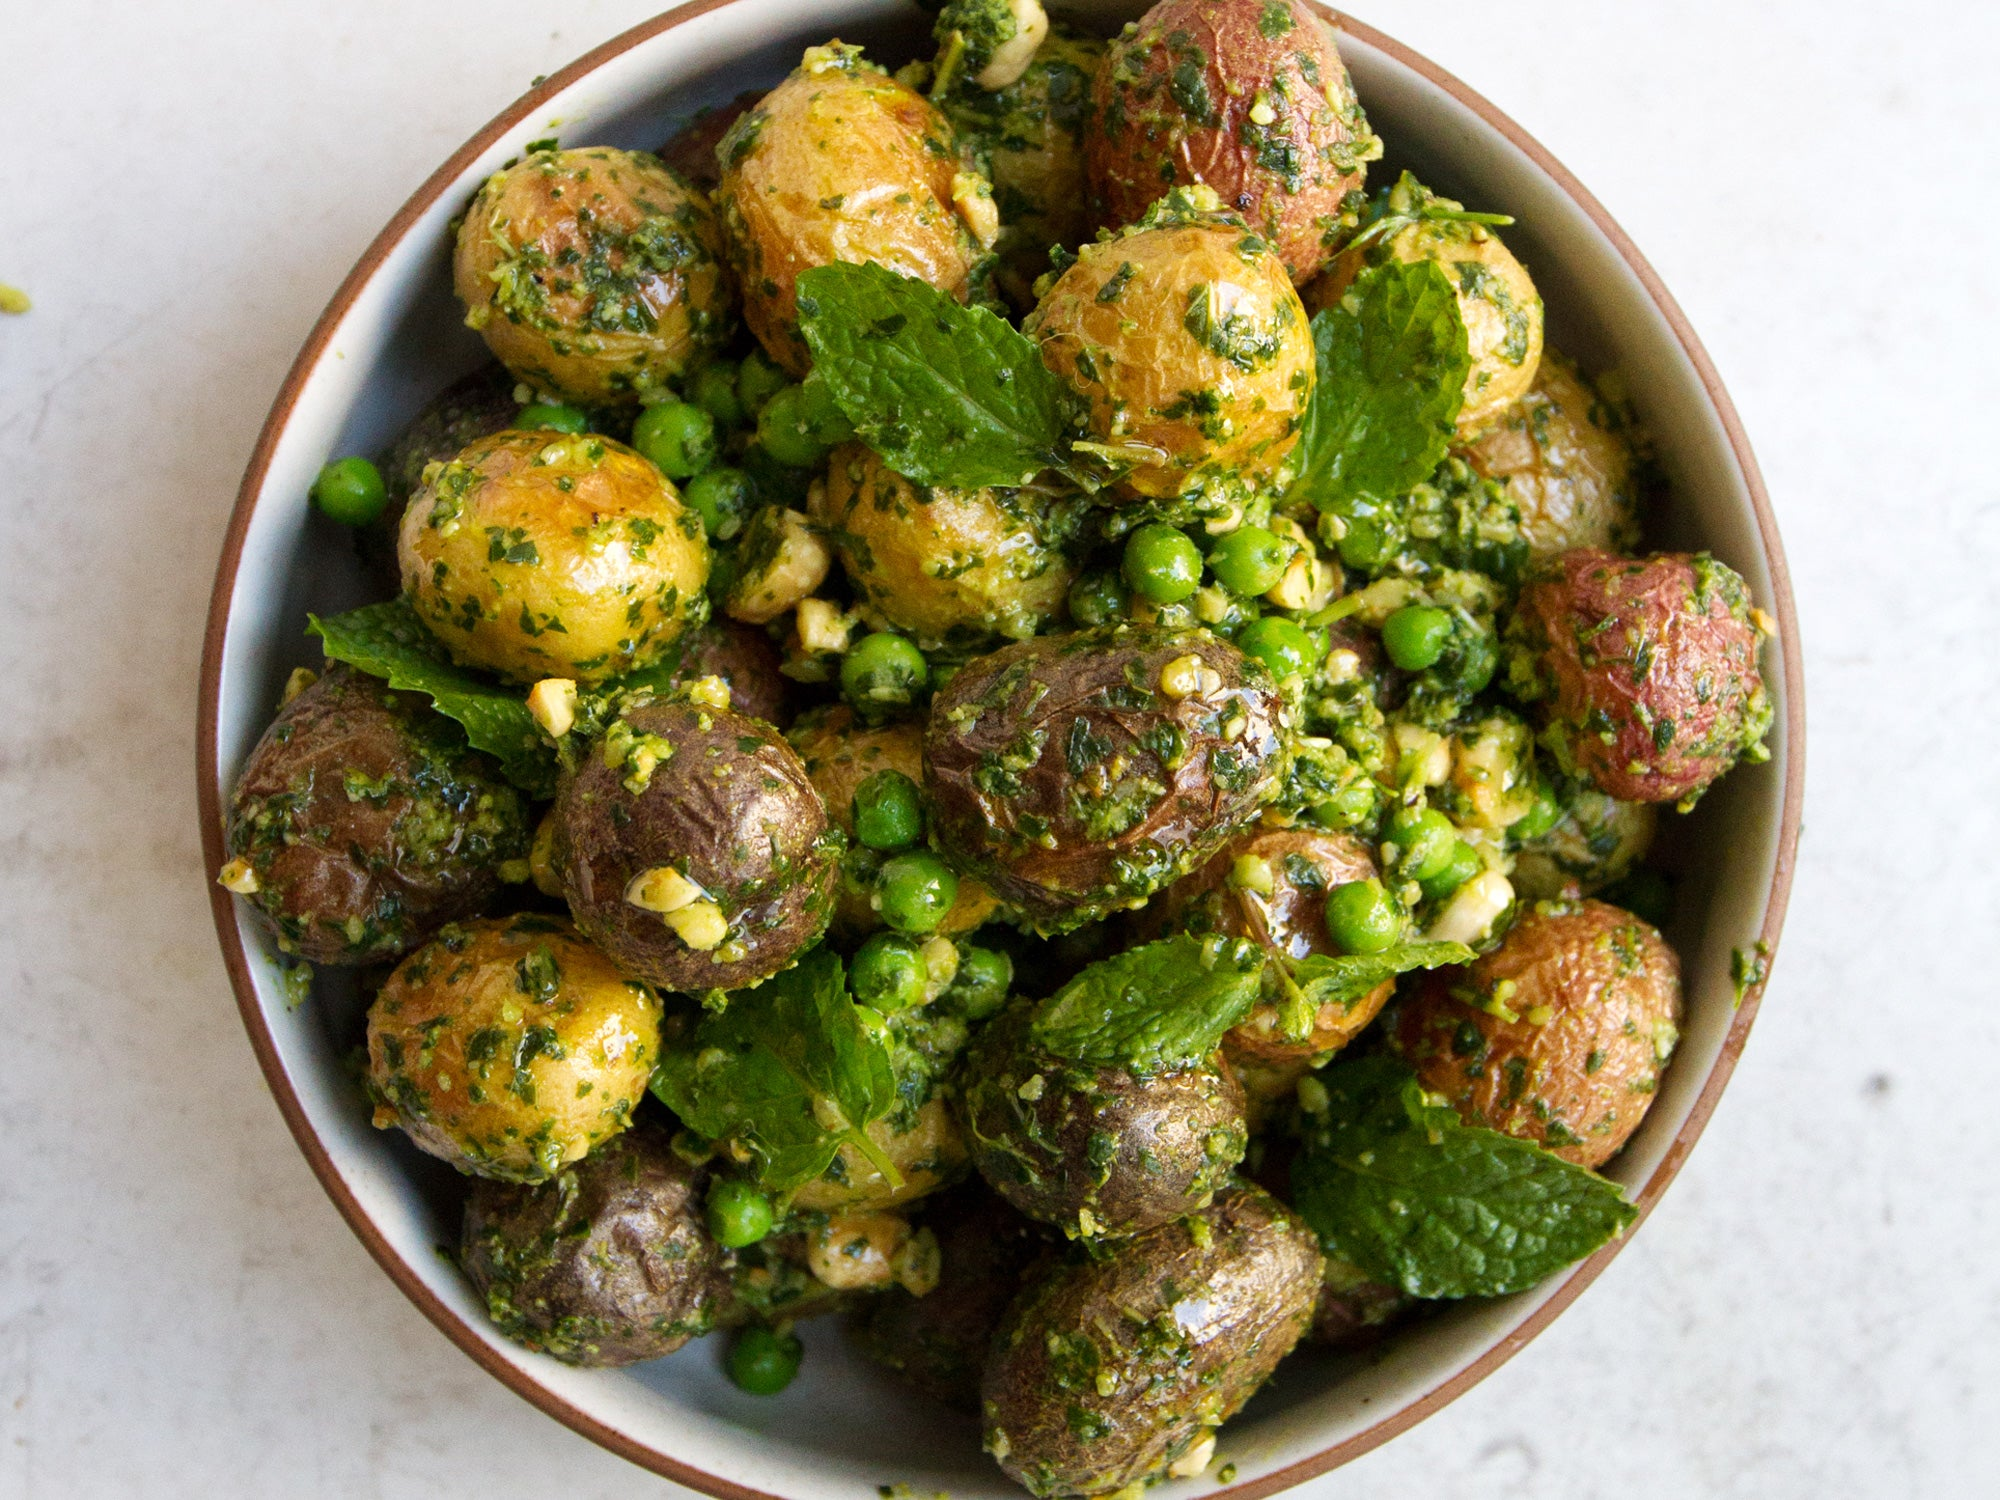 16 Potato Salad Recipes to Update Your Summer Picnic